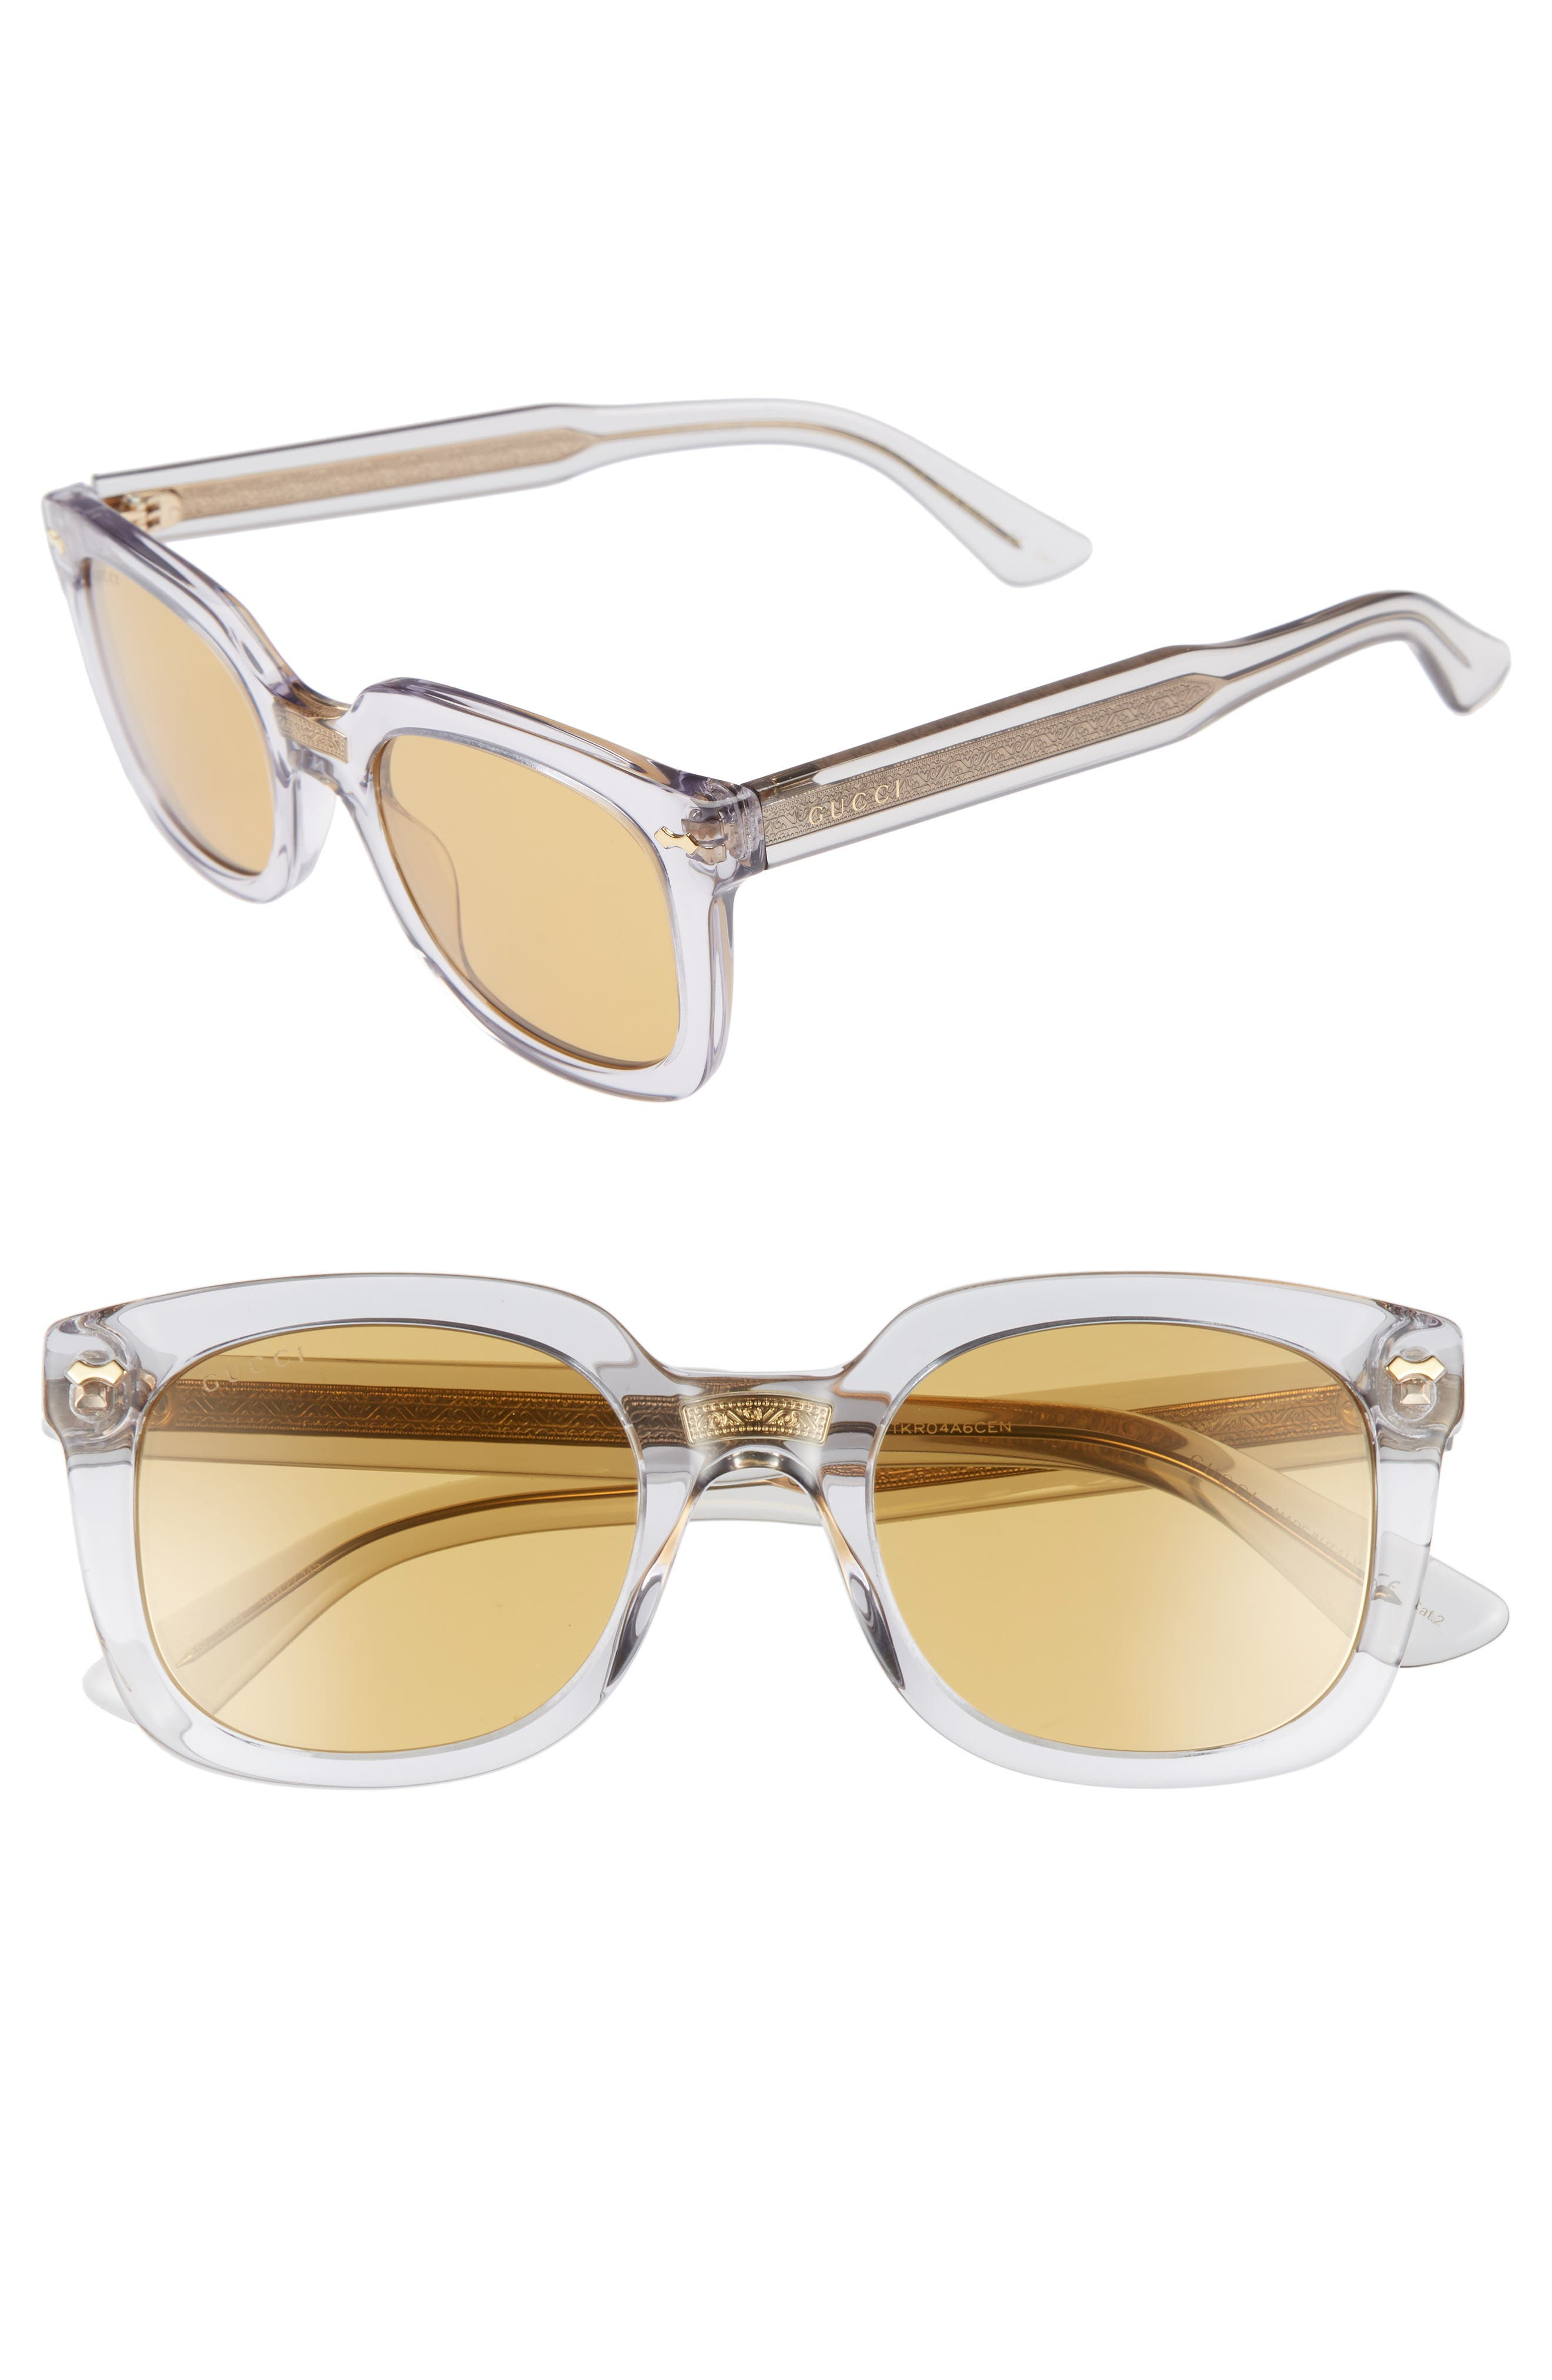 Gucci 50mm Square Sunglasses